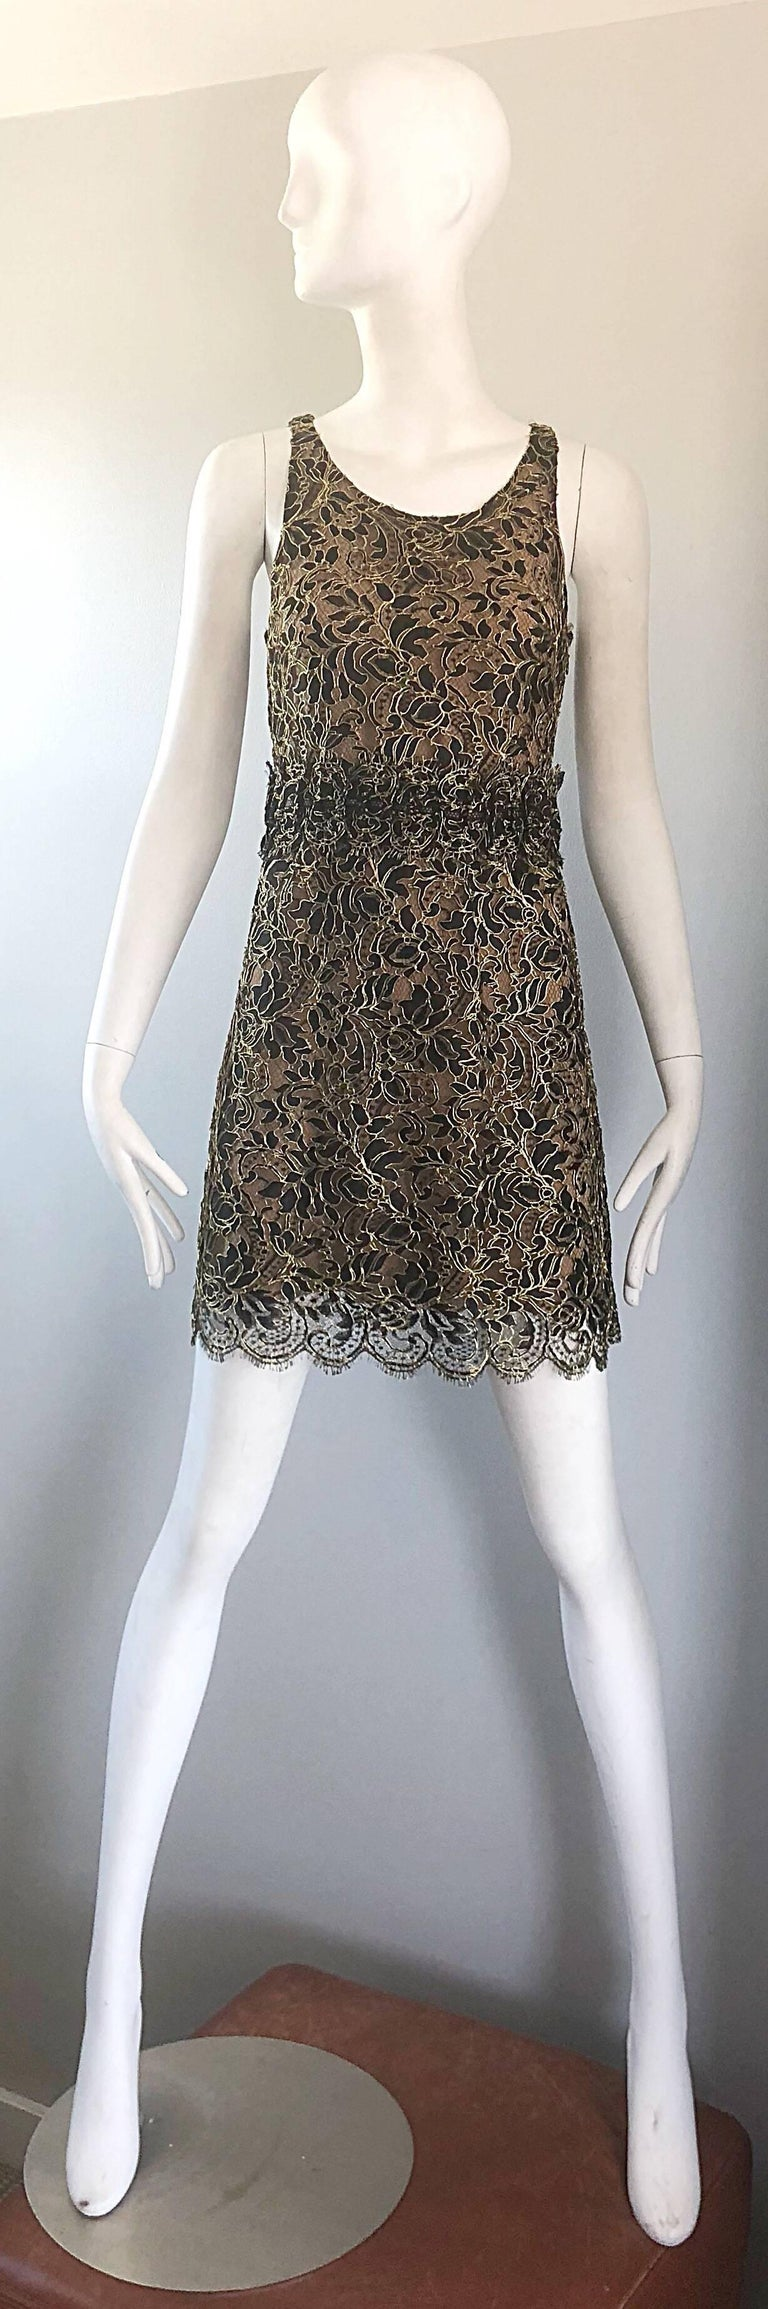 Gorgeous early 2000s BALENCIAGA by NICOLAS GHESQUIERE black, gold and nude silk chiffon lace cocktail dress! Features a nude silk chiffon underlay with black and gold French lace over. Balenciaga pieces from the Ghesquiere era are highly